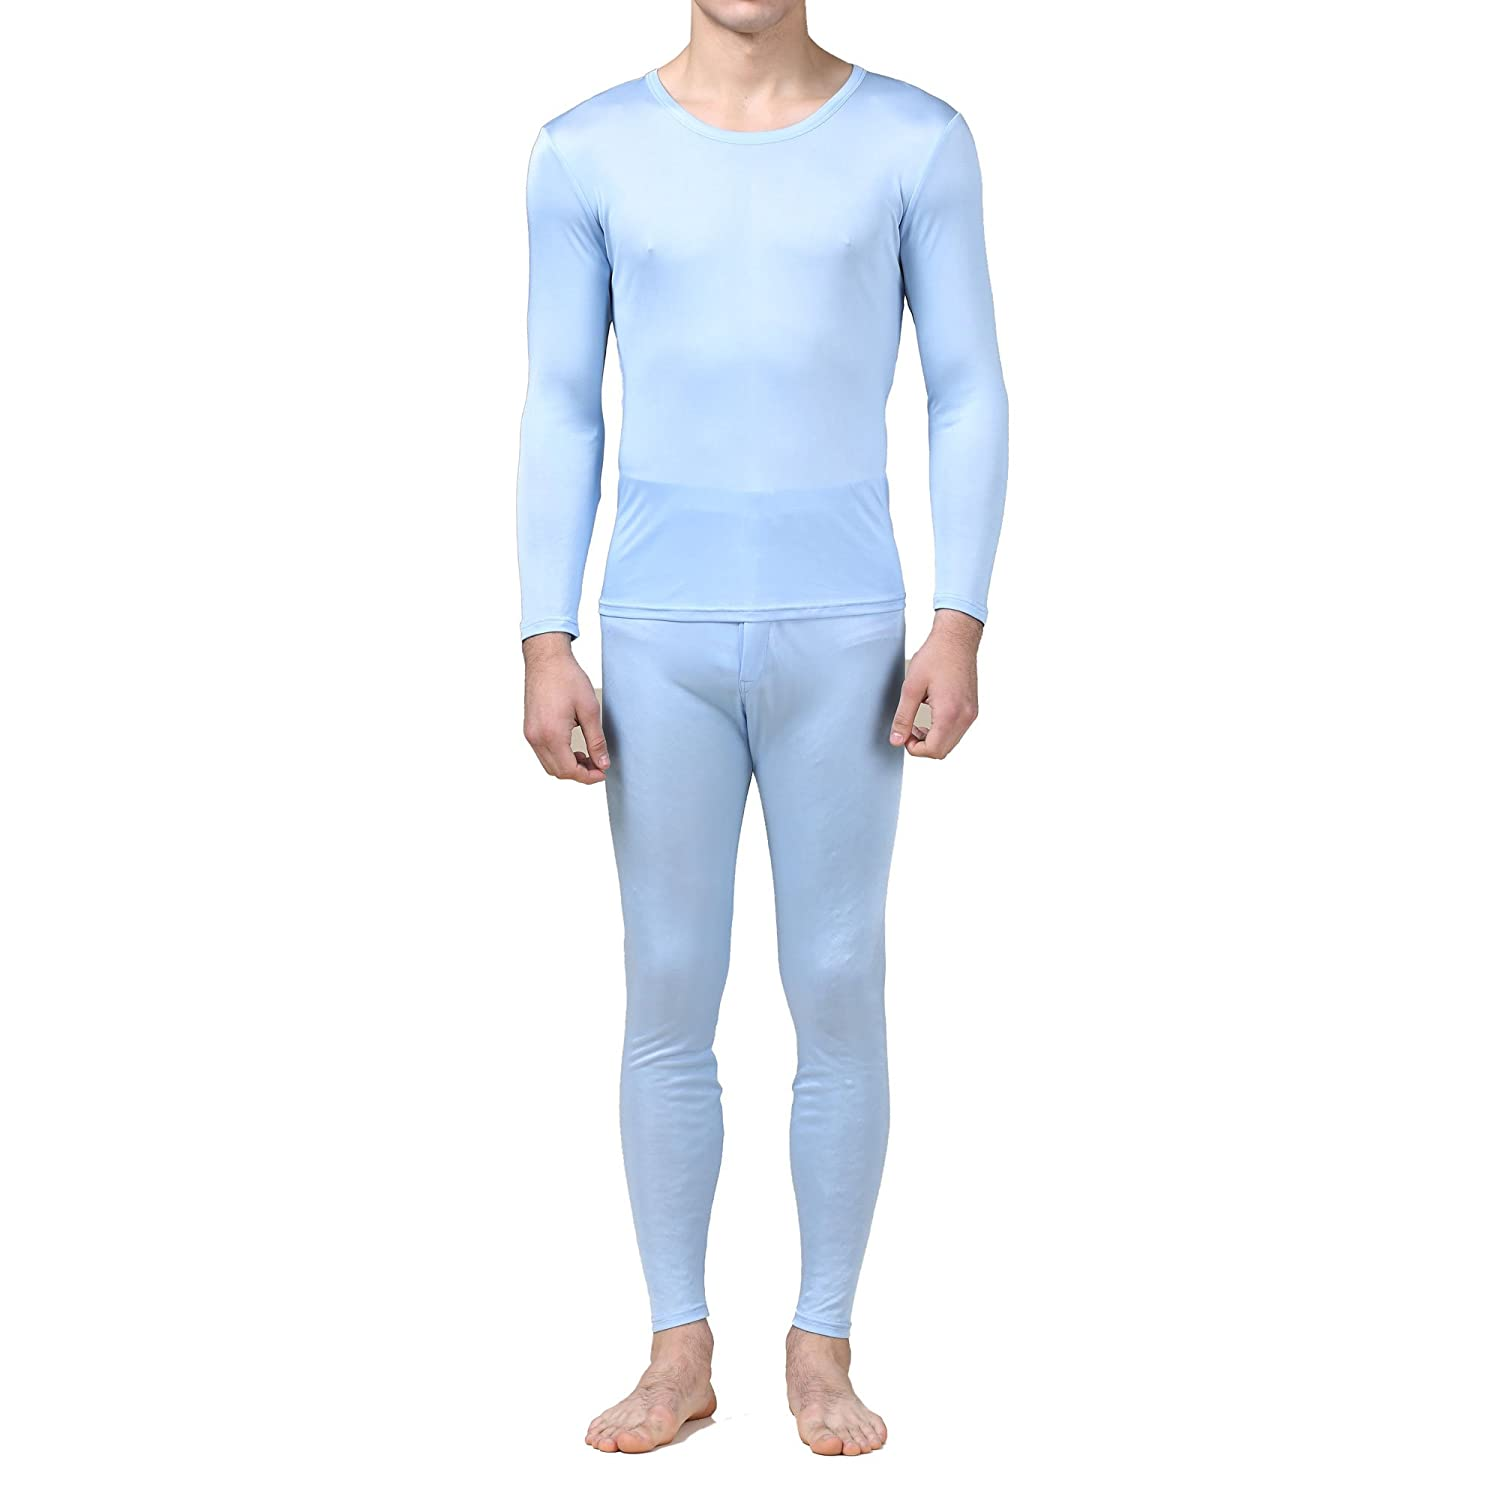 Pure Silk Knit Round Neck Men Underwear Long Johns Set SKMLJ9802